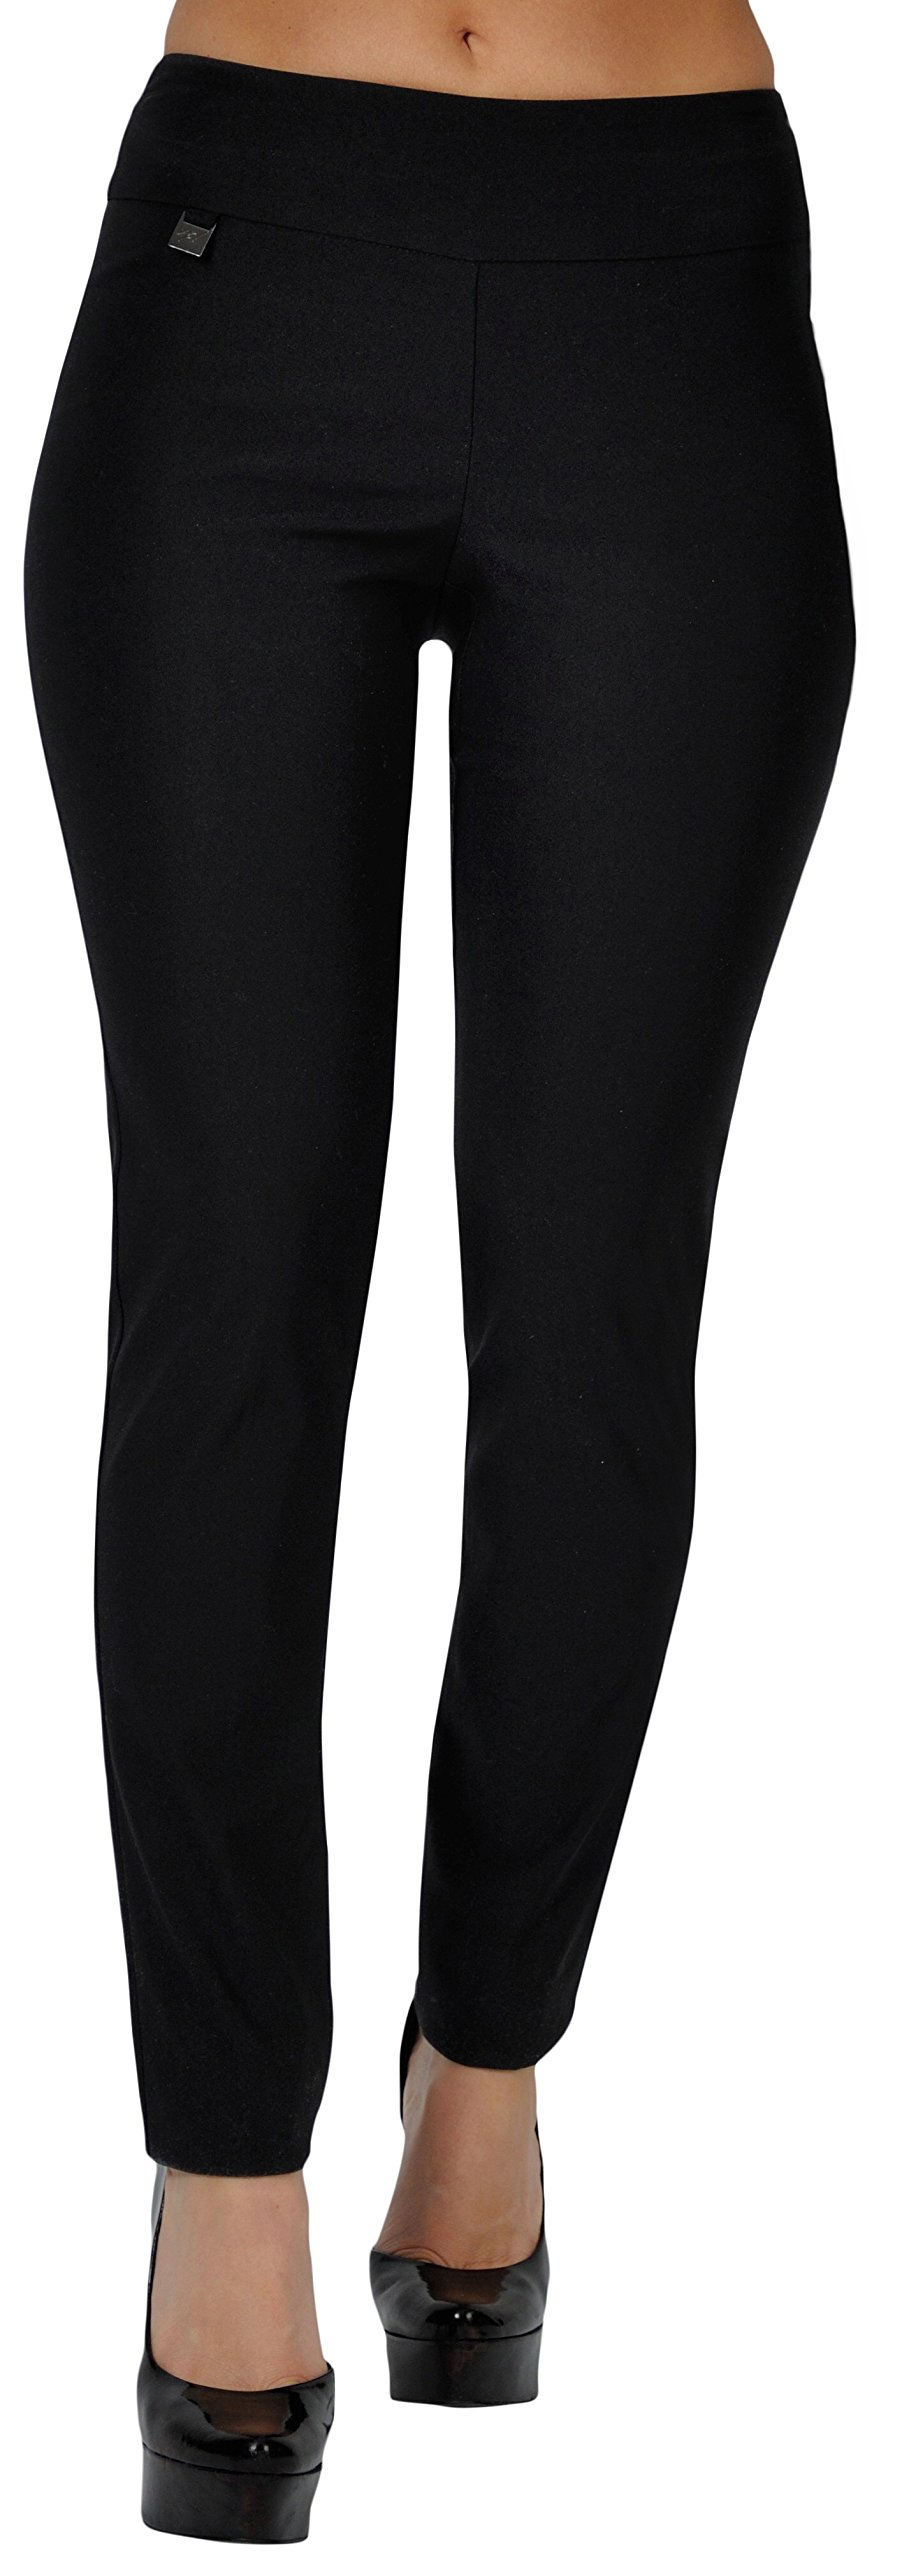 UP! Pants UP Womens Flatten and Flatter Skinny Legs Inseam 31'' Style 64562 Size 12 Black